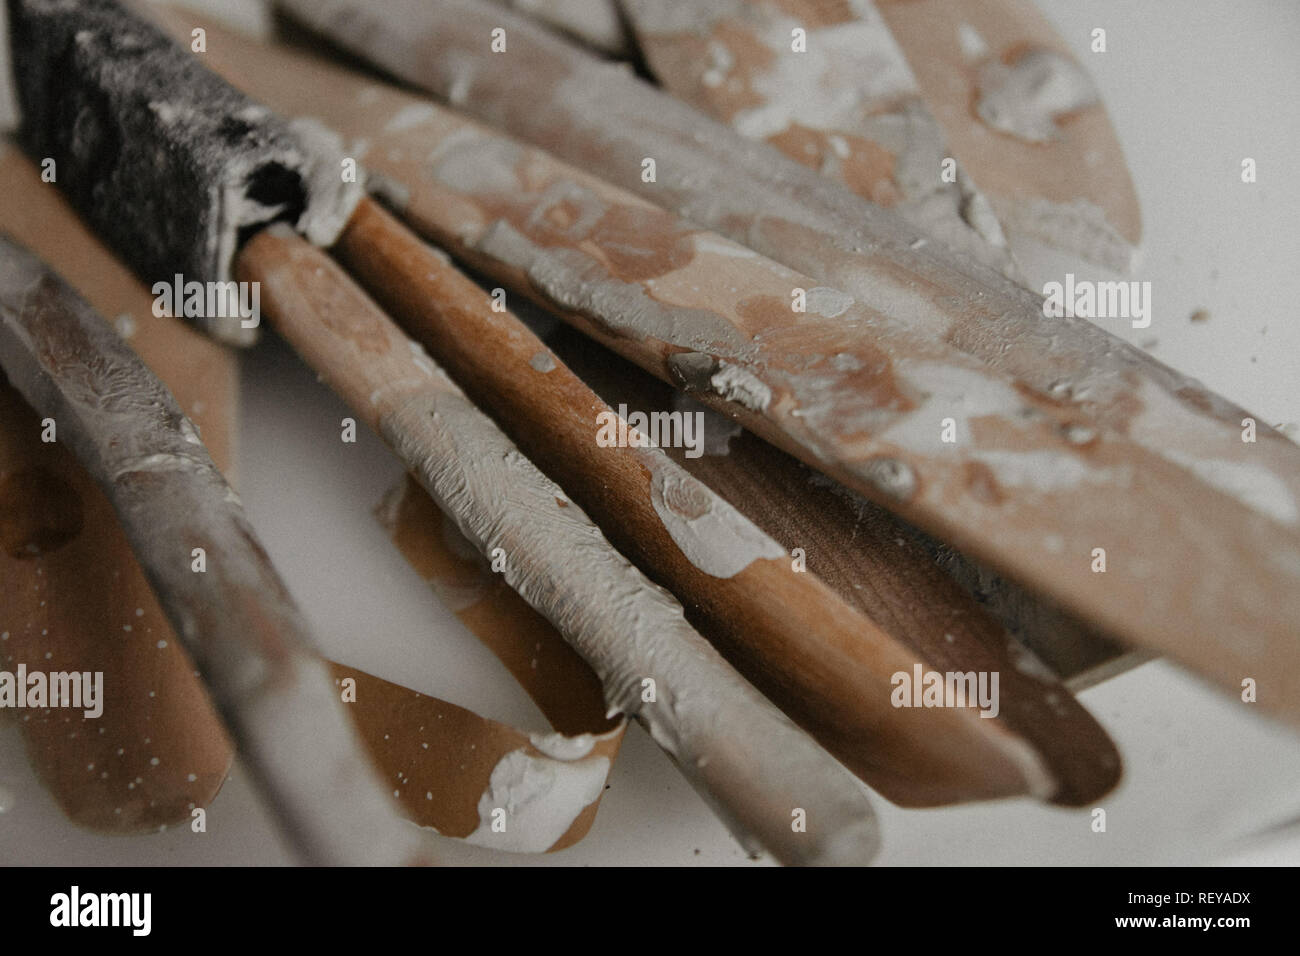 Set of dirty art and craft sculpting tools on wooden table in pottery workshop - Stock Image